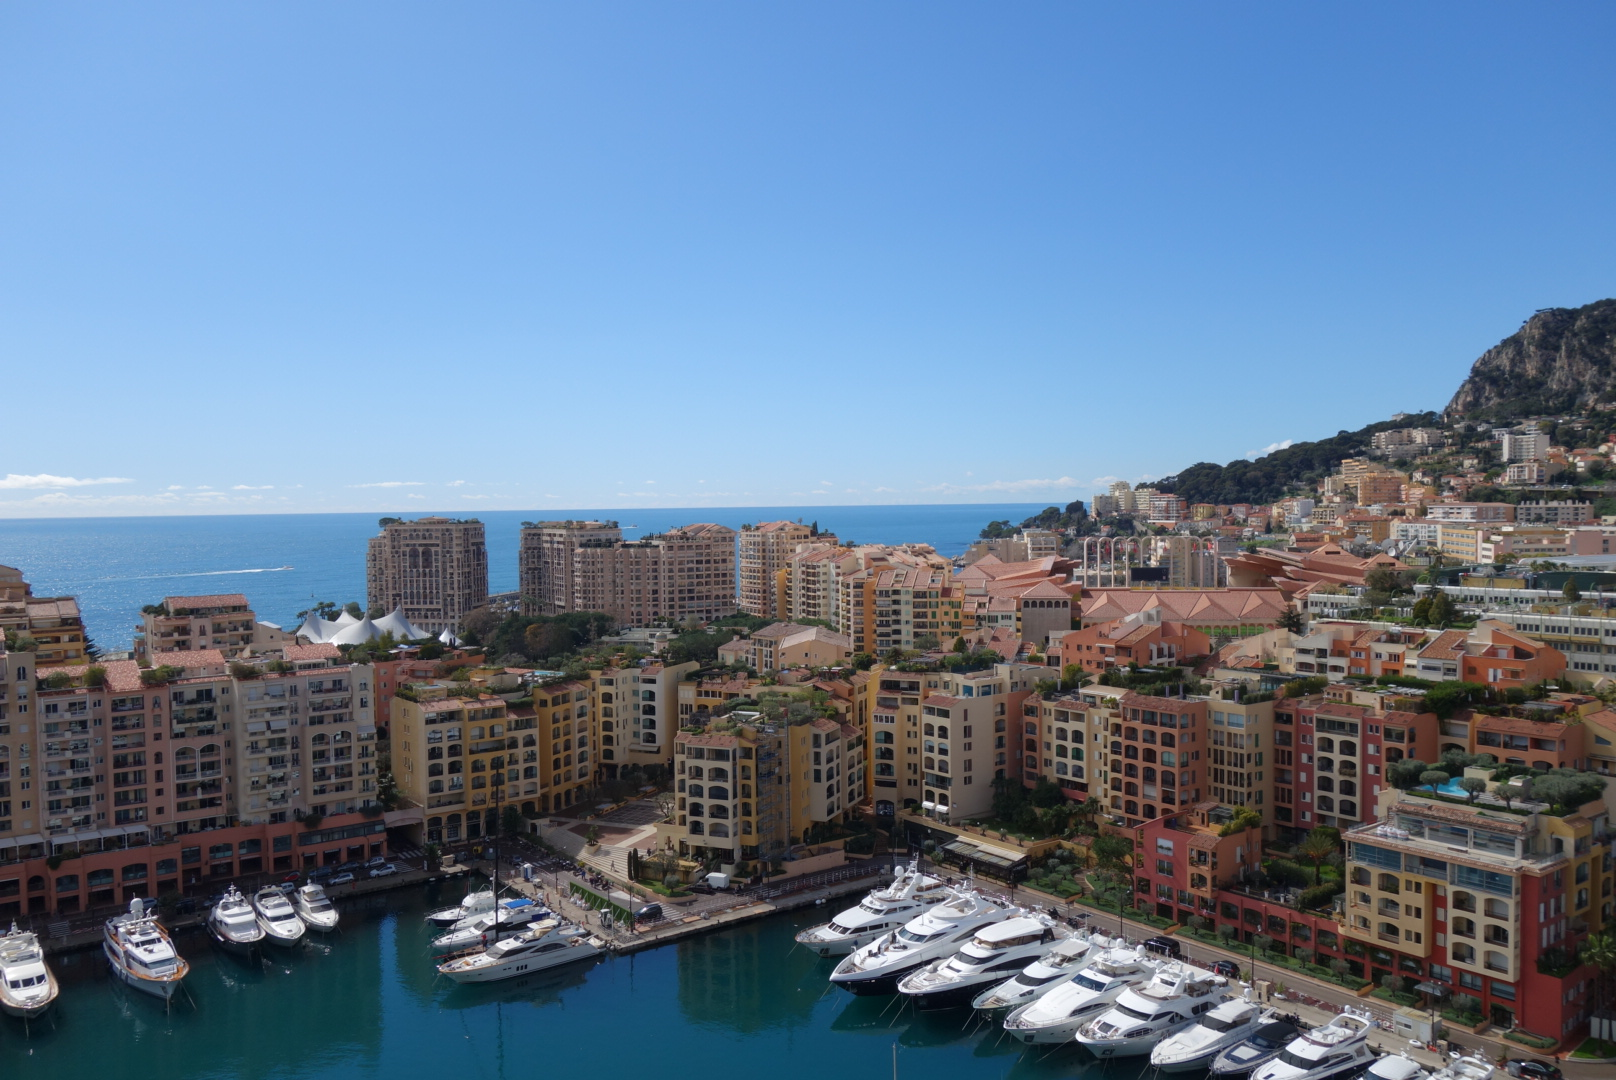 Monaco is beautiful and looks like a postcard when the sun is out. It's no wonder why all the rich and famous come here. Plenty of space for their yachts too!